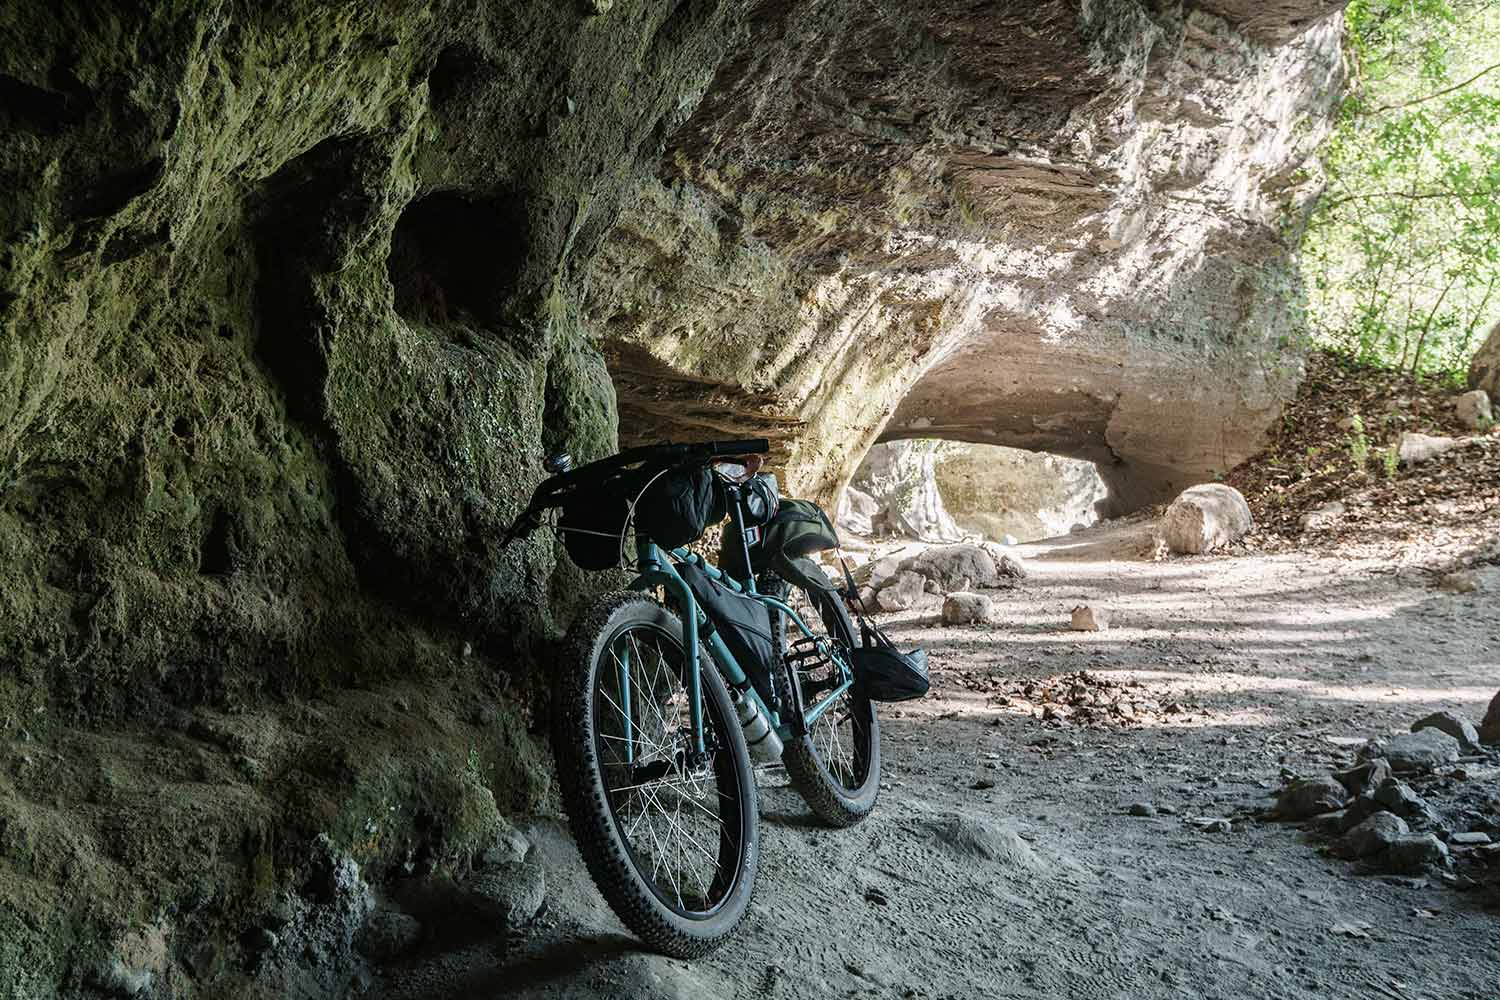 OFF-ROAD BIKEPACKING BIKES